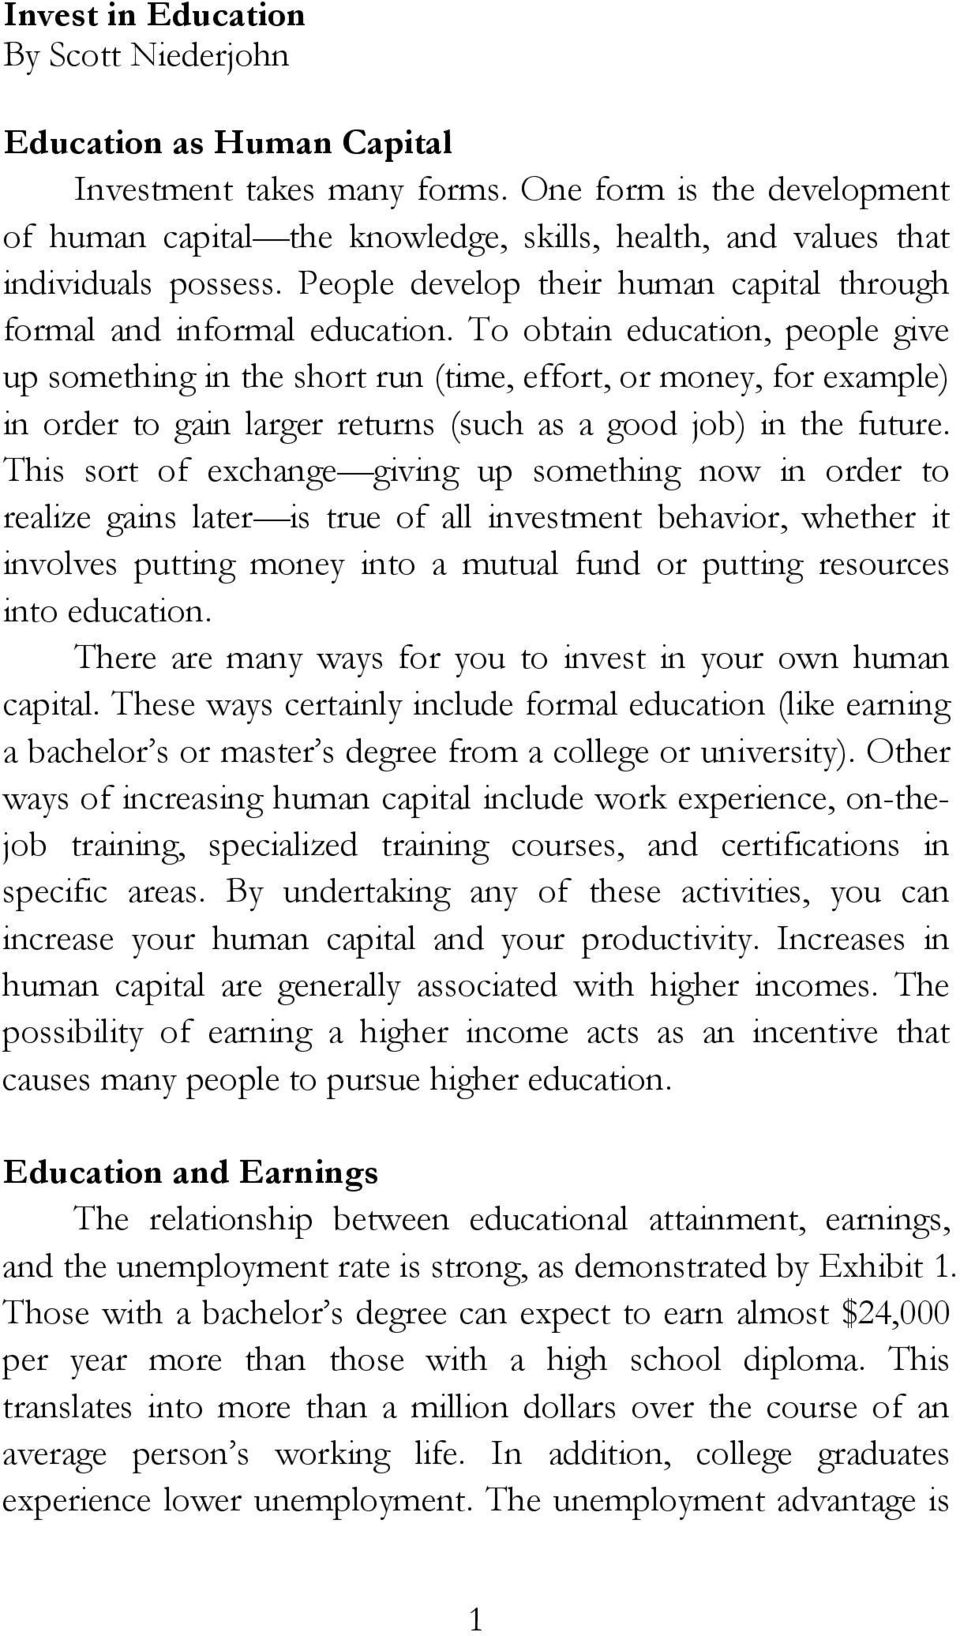 To obtain education, people give up something in the short run (time, effort, or money, for example) in order to gain larger returns (such as a good job) in the future.